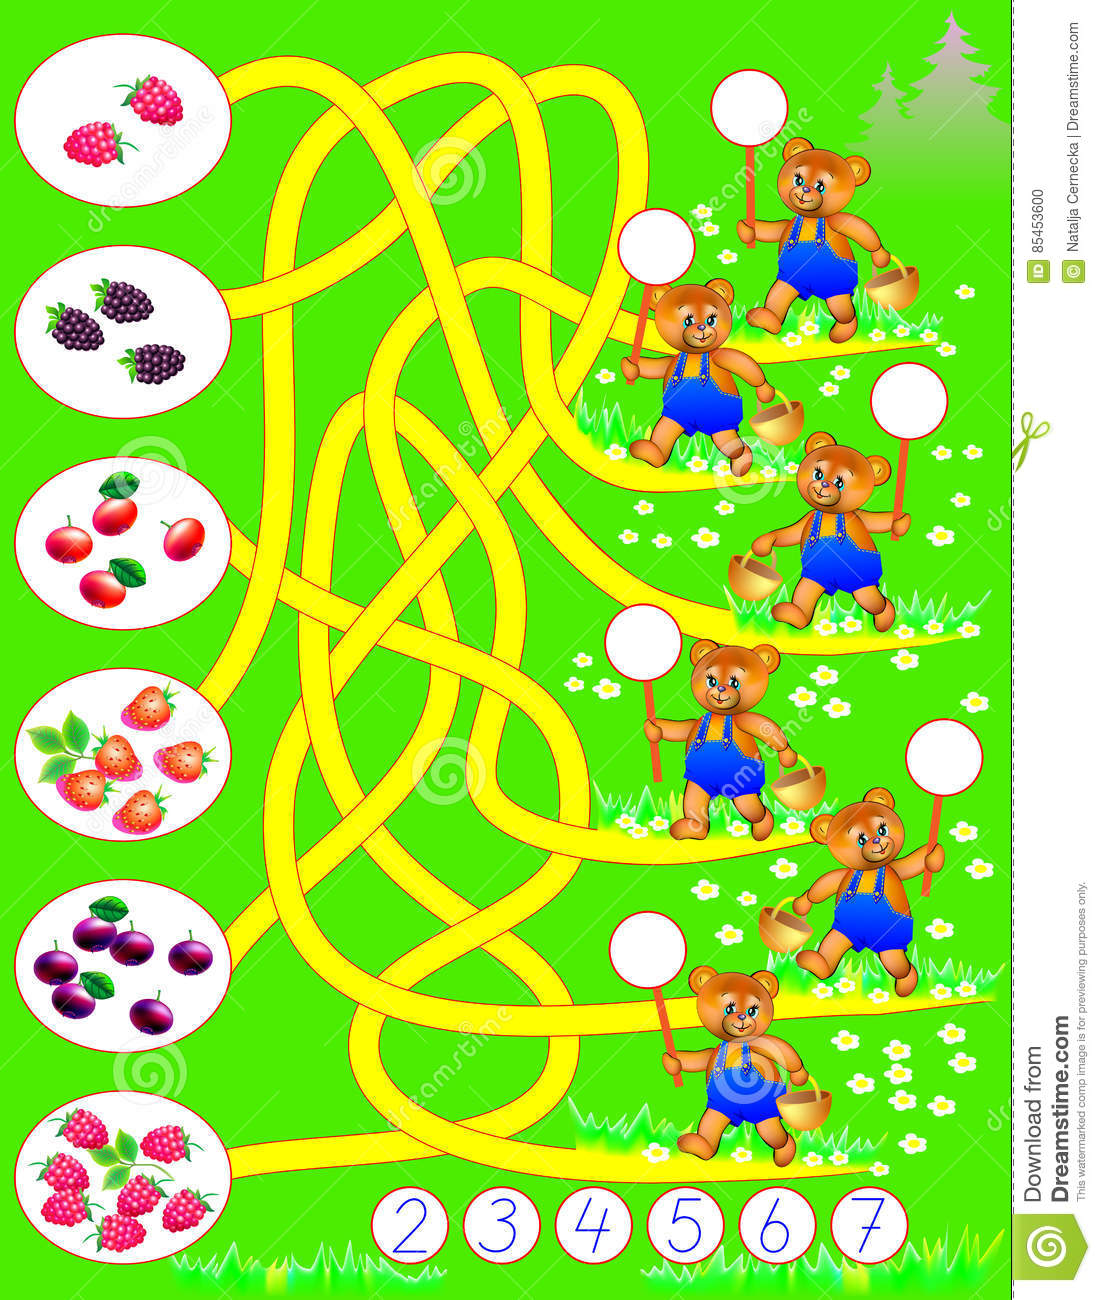 Logic Exercise For Young Children Count How Many Berries